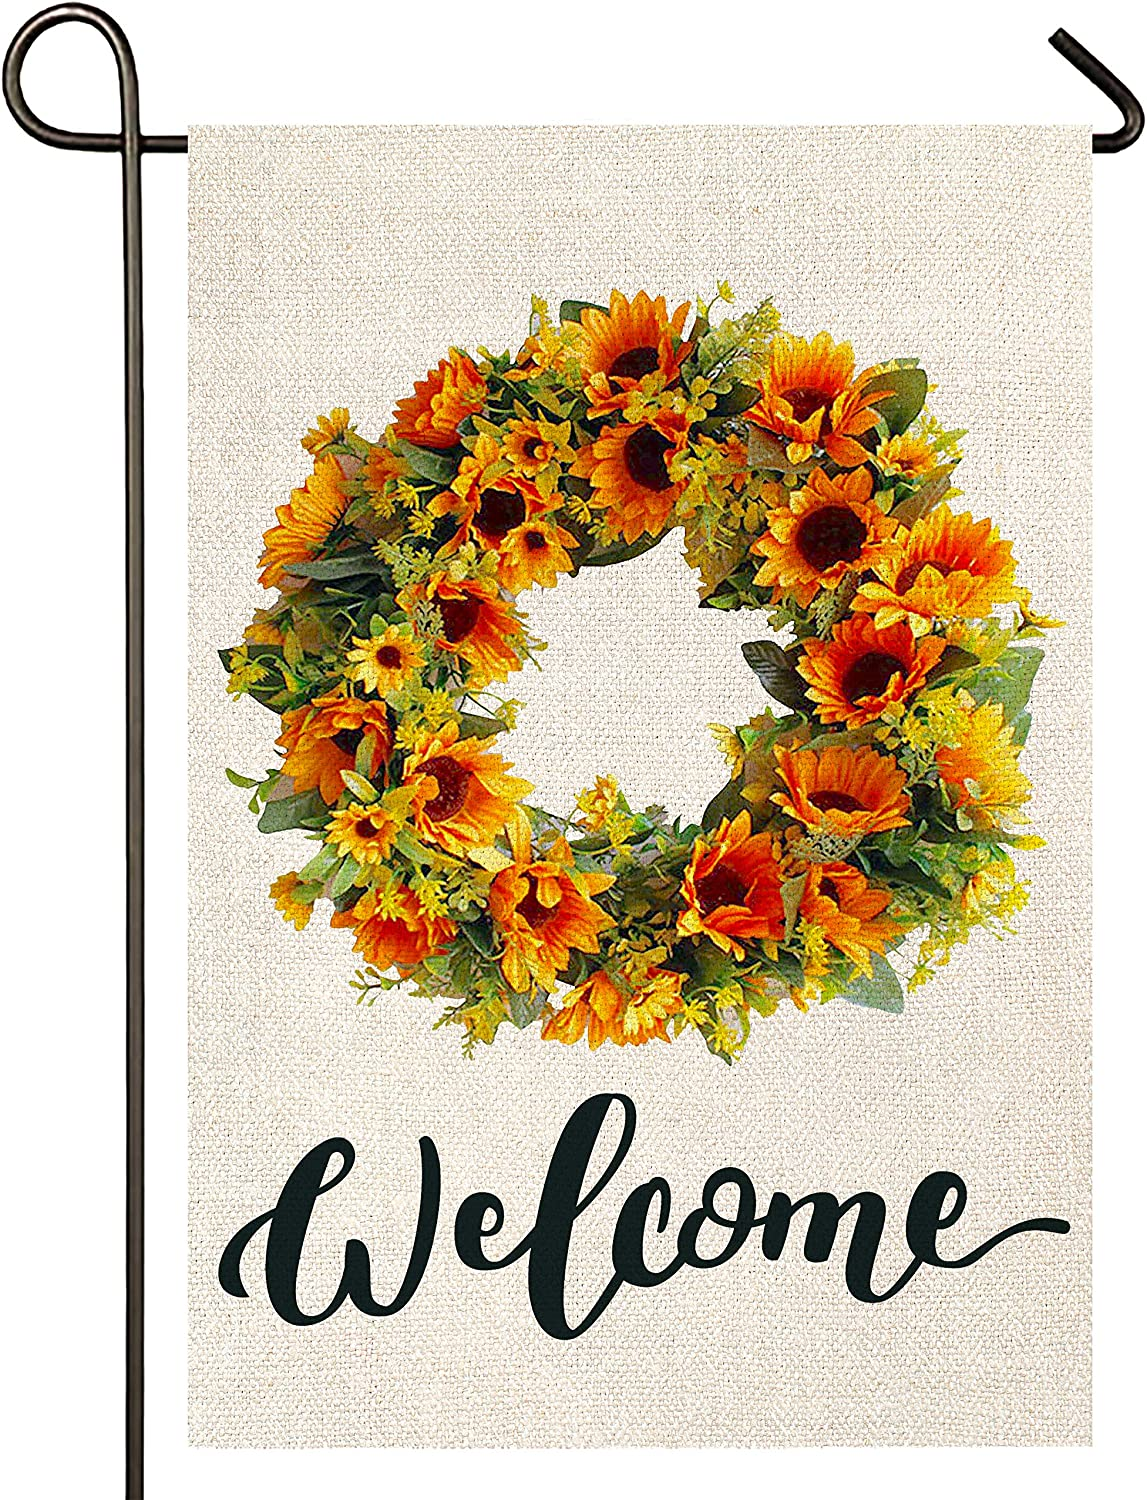 Atenia Sunflower Garden Burlap Flag, Double Sided Sunflower Wreath Welcome Sign Garden Outdoor Yard Flags for Summer Decor (Garden Size - 12.5X18)